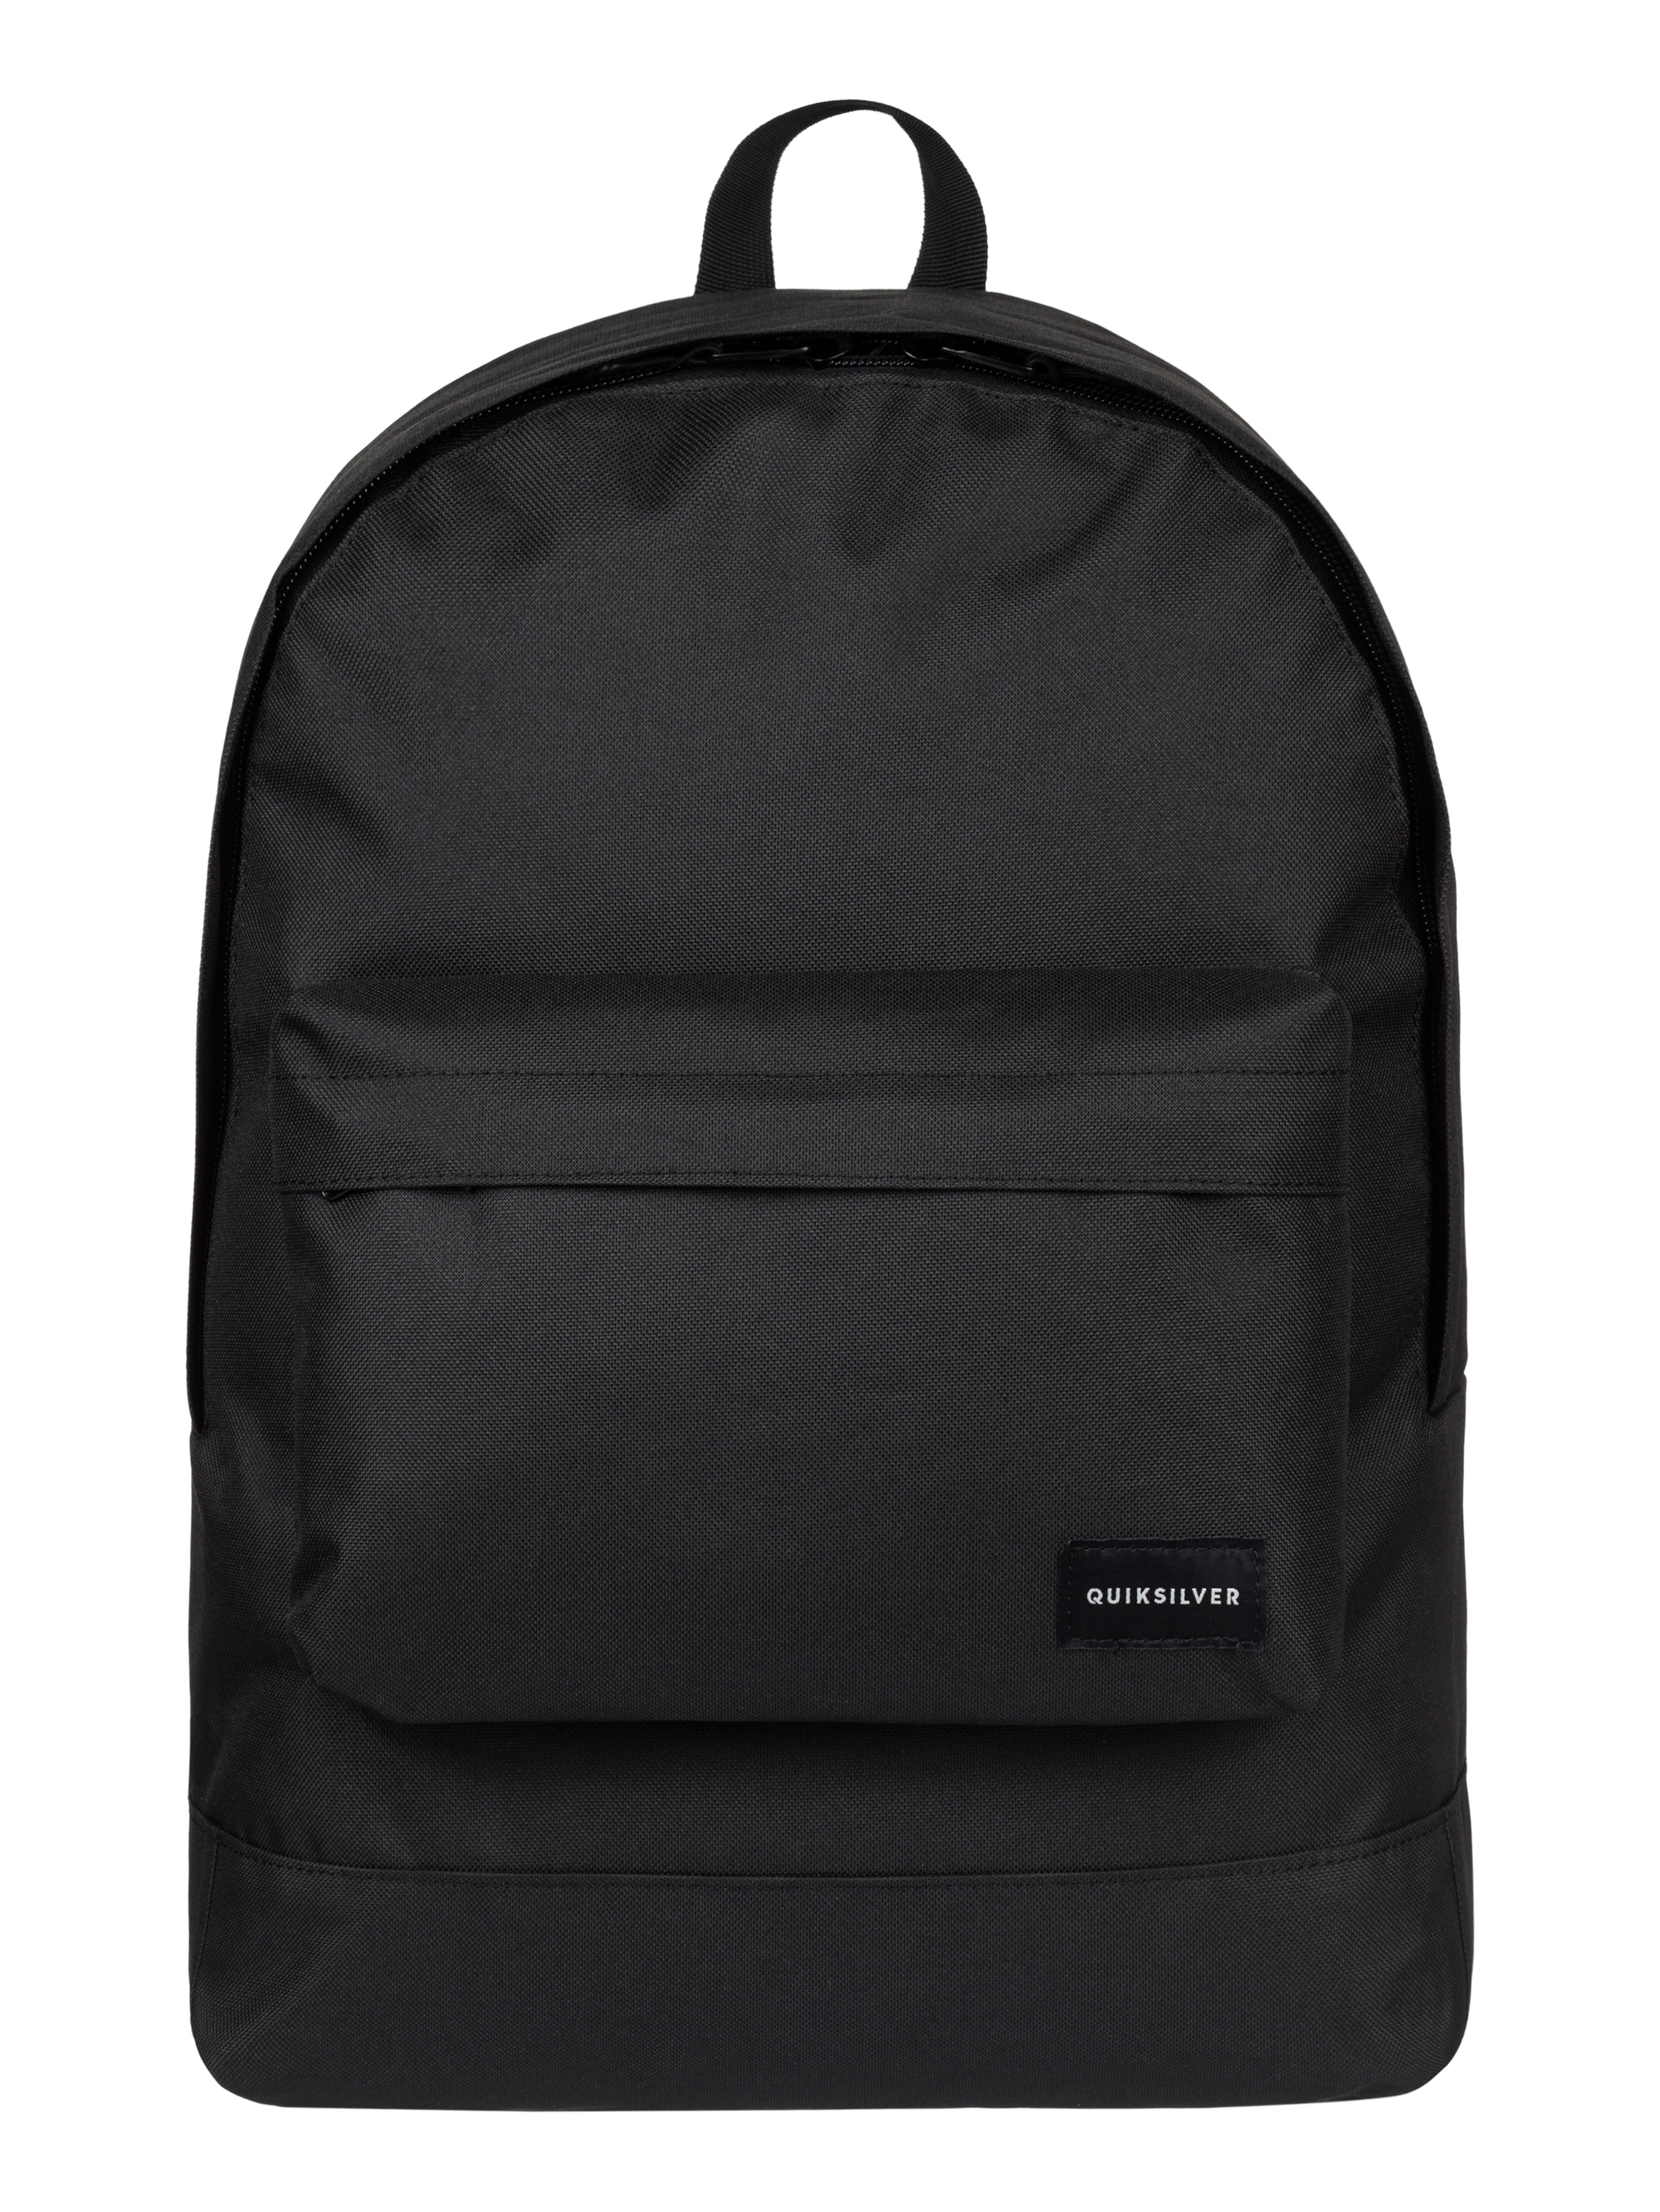 quiksilver everyday poster backpack black eqybp kvj0 school